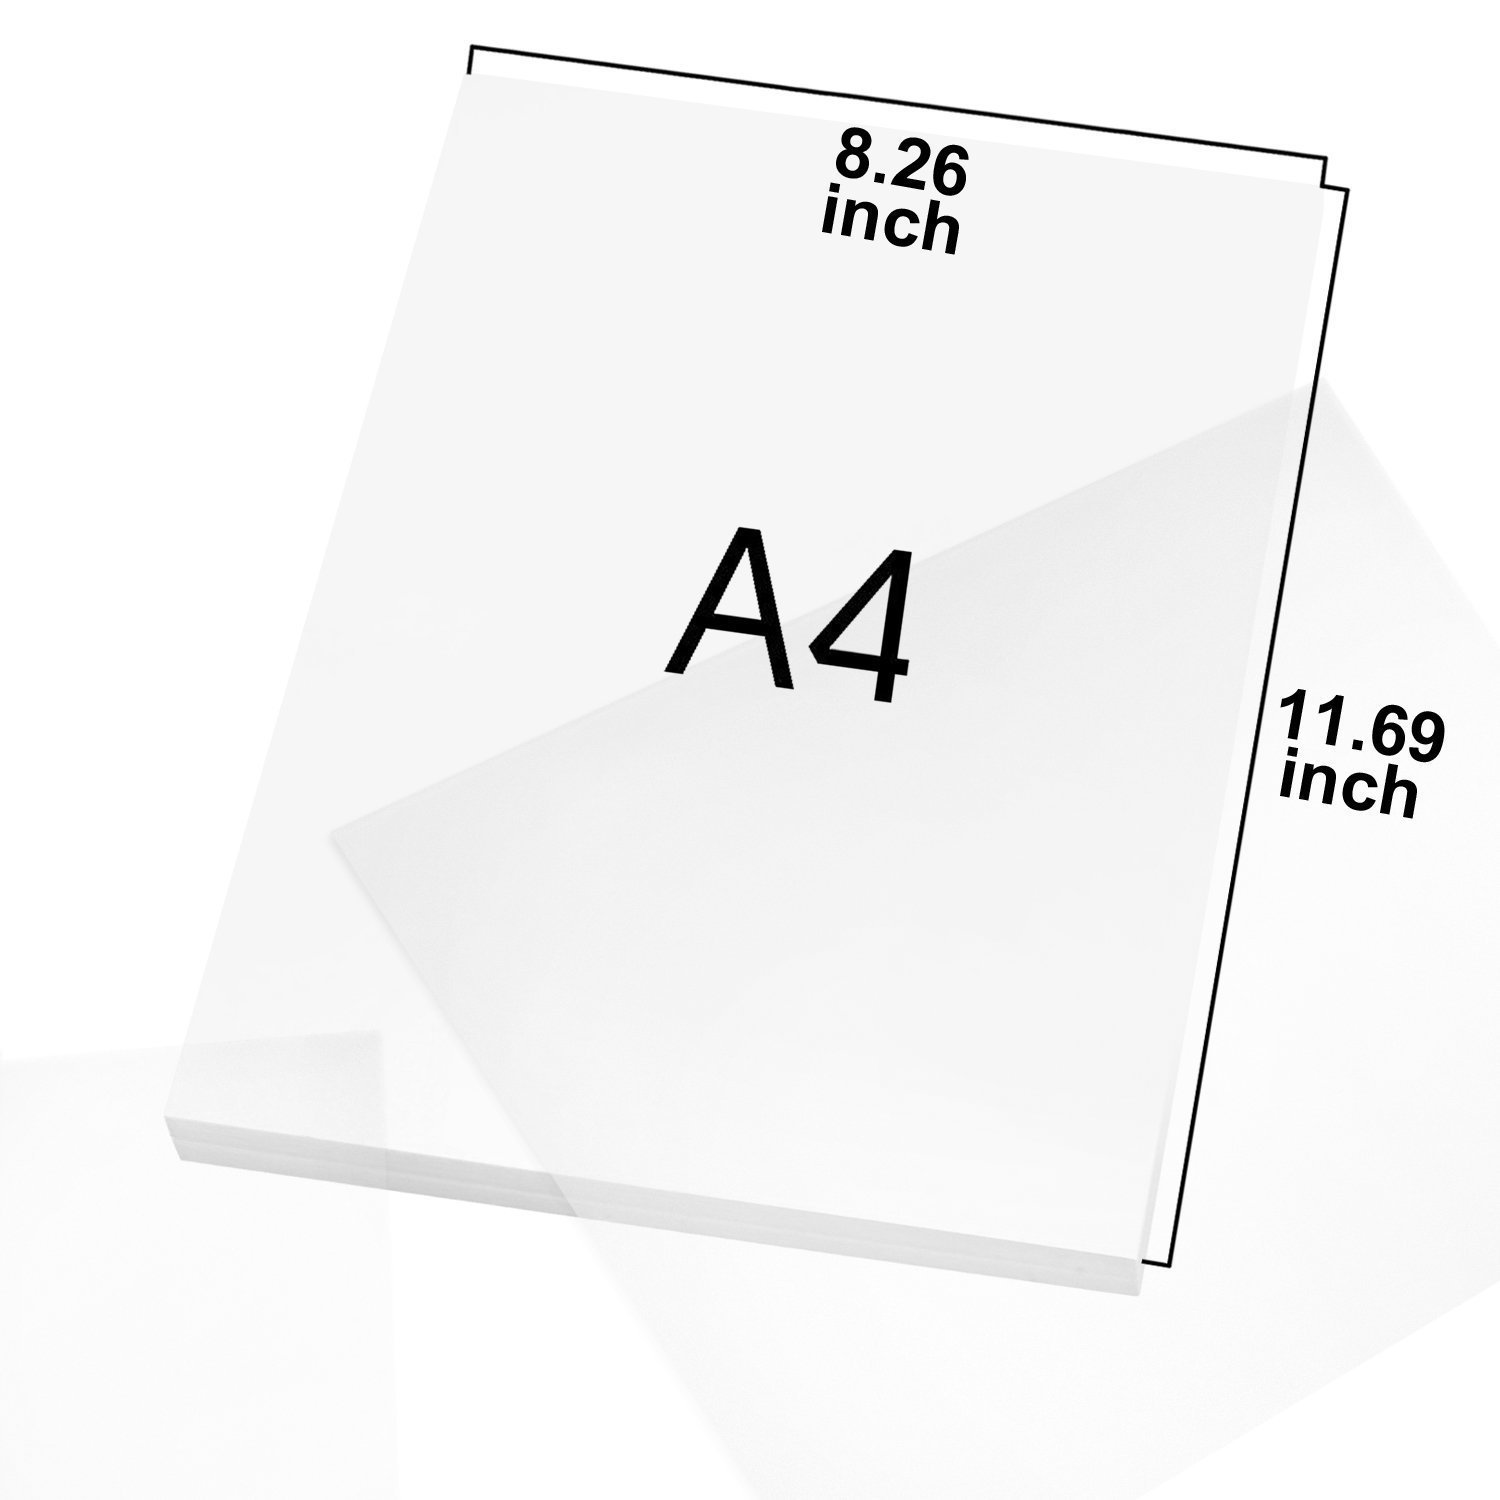 100 Sheets #1 Tracing Paper ,Natural Transparent Trace Paper A4 100 GSM for Architecture//Design//Graphic Laser /& Inkjet Printers